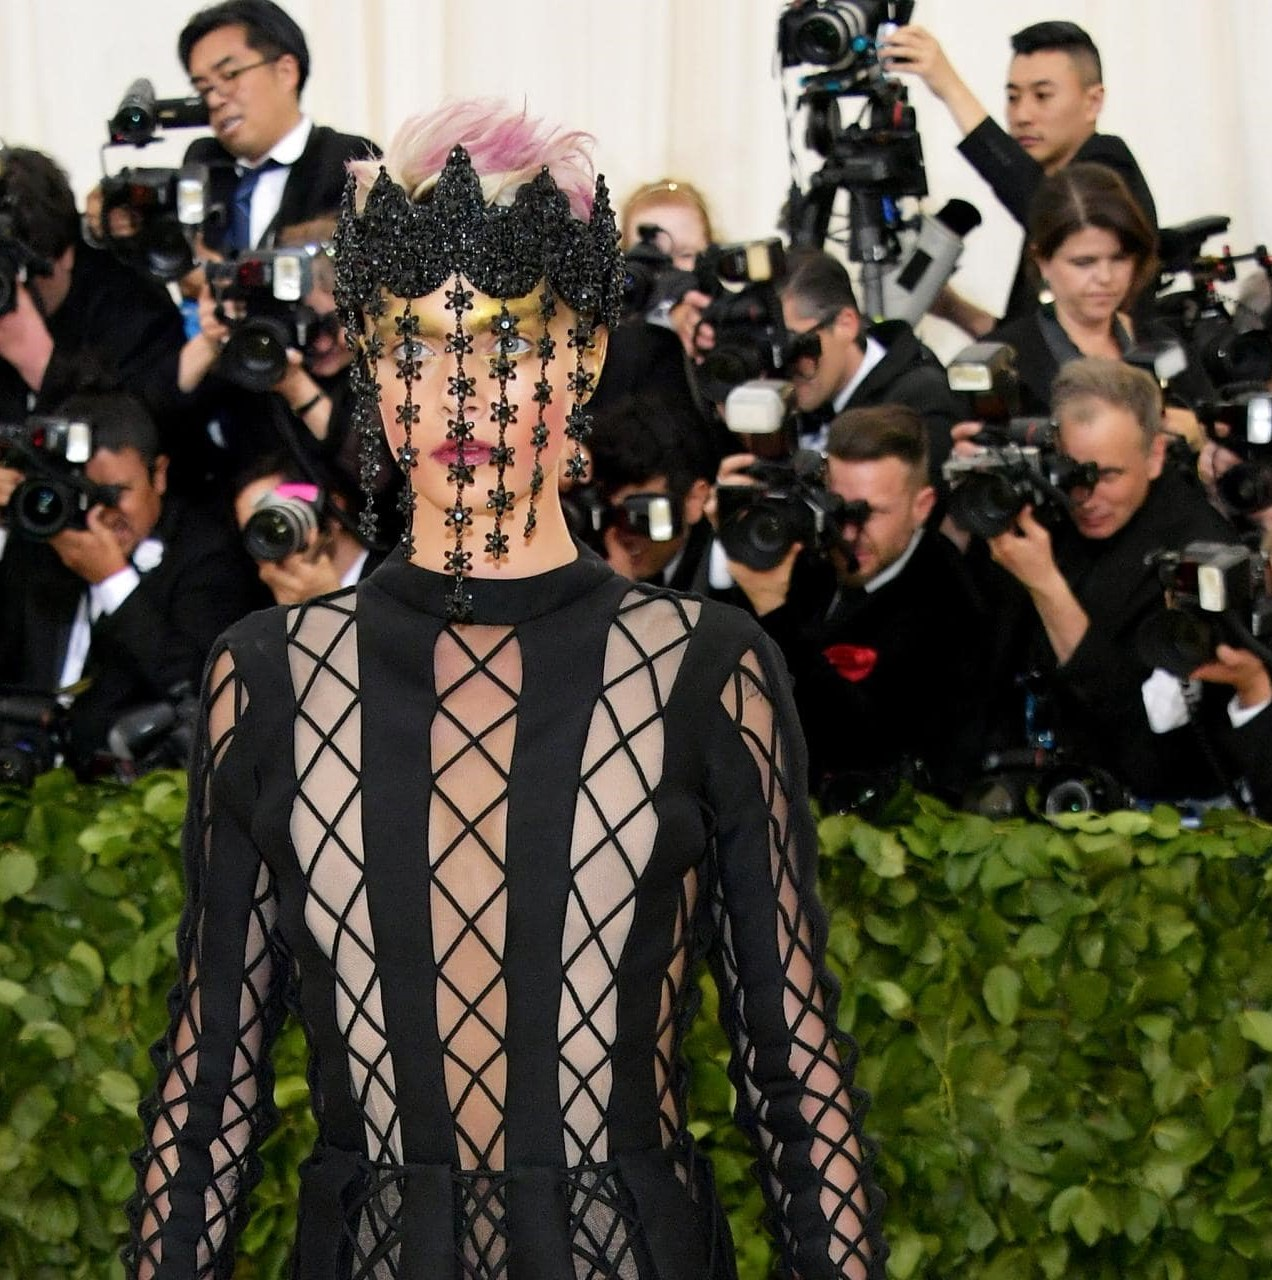 Cara Delevigne dressed for confession at Met Gala.jpg